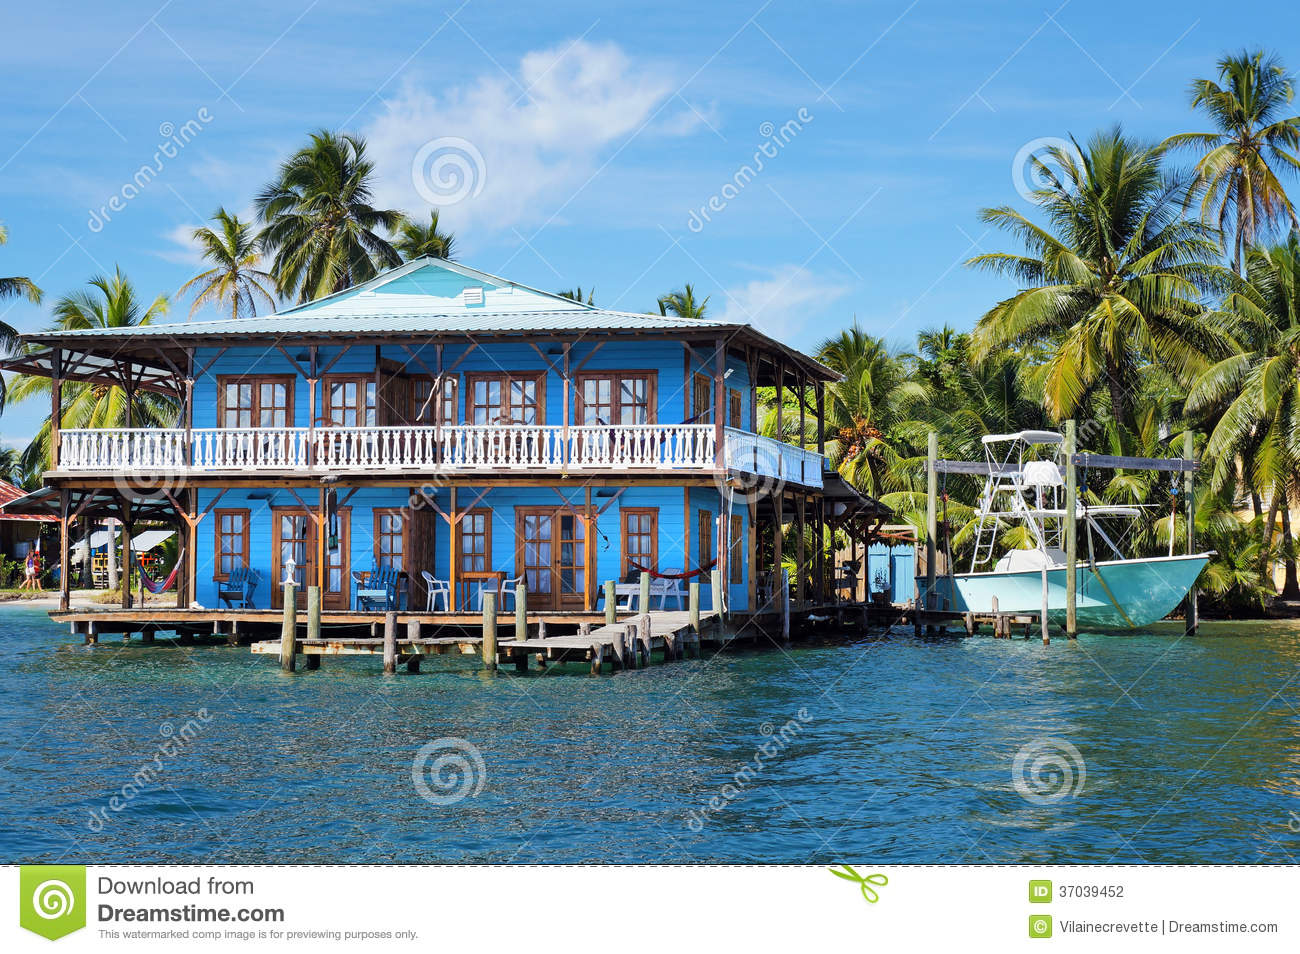 President Trump Lands Rome also Denvers Single Family Homes By Decade 1920s additionally French Country Inspired Farmhouse California Stone Maison also Stock Photography Beautiful Tropical House Stilts Caribbean Over Sea Boat Coconut Trees Panama Image37039452 furthermore The Willow House By Guz Architects 784. on italian country house plans